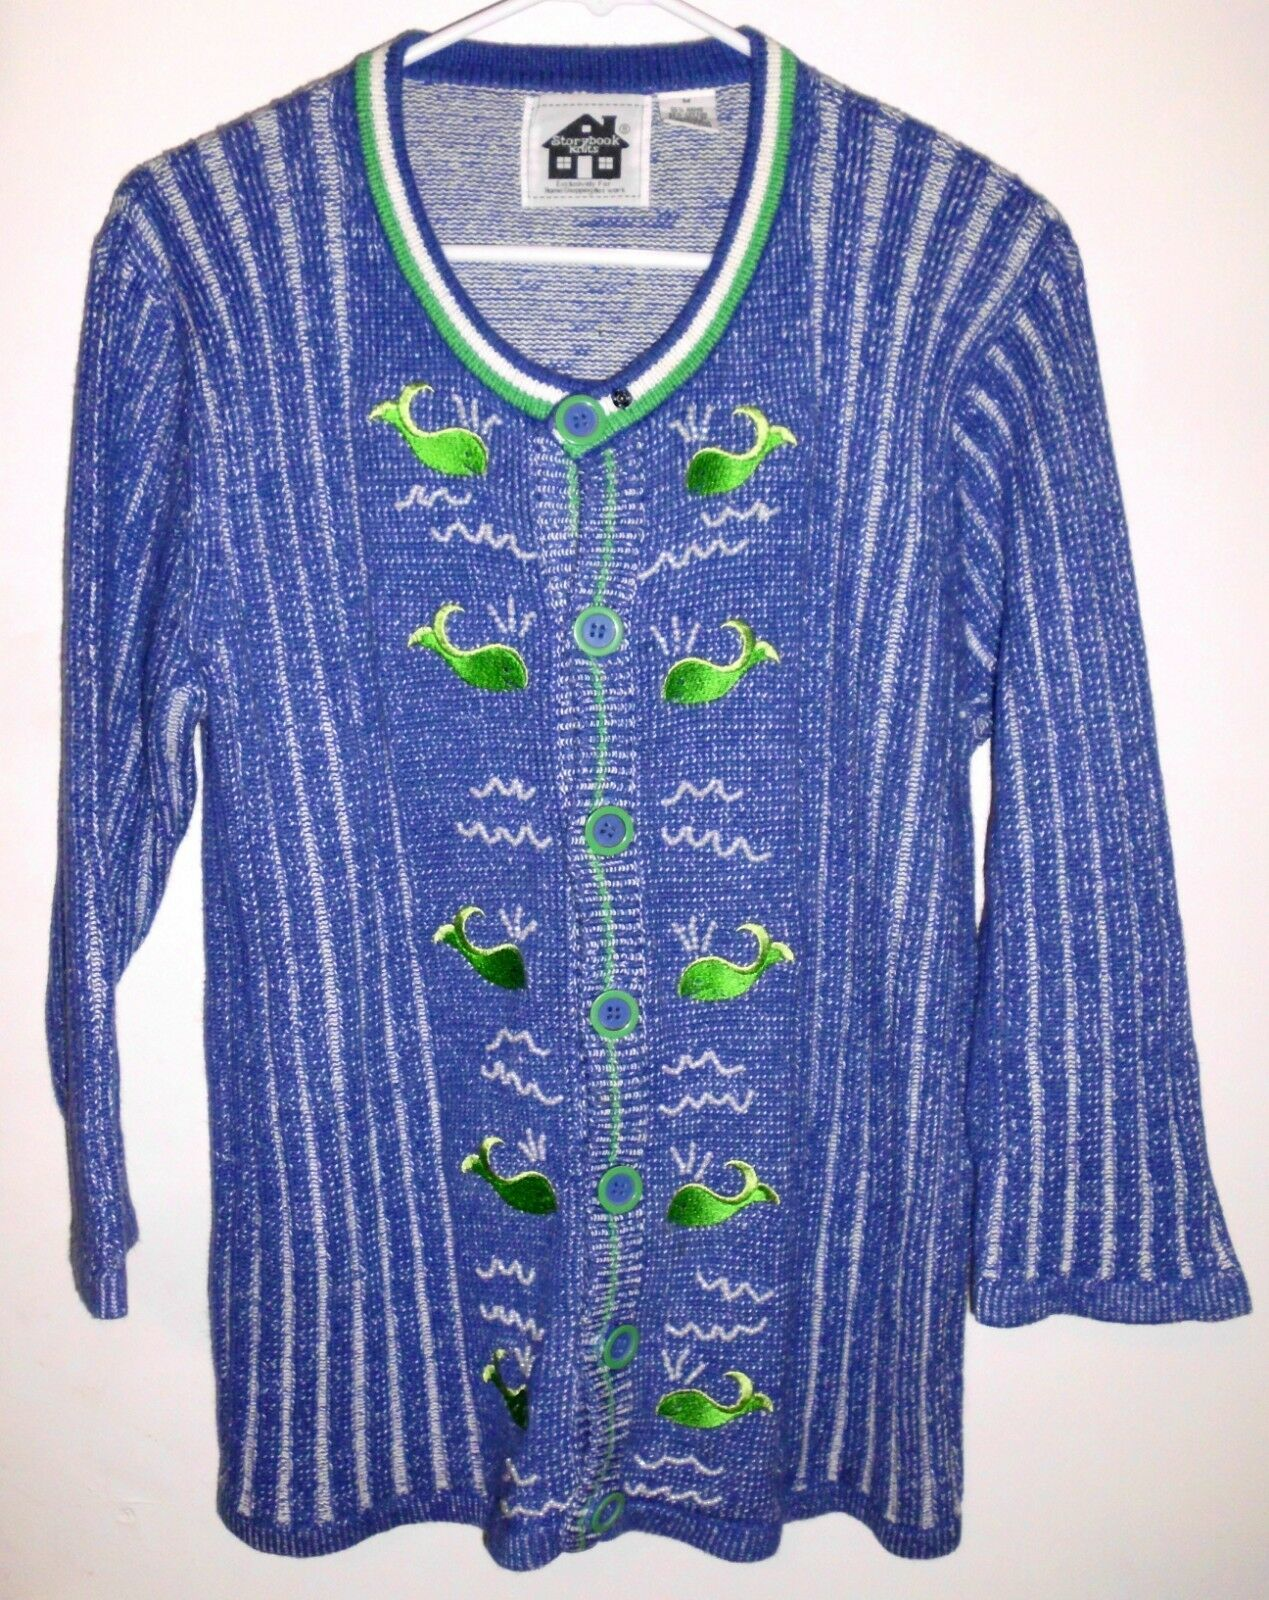 STORYBOOK KNITS Cardigan MEDIUM Sweater Embroidered Whale Blue Green Beads Women - $48.50